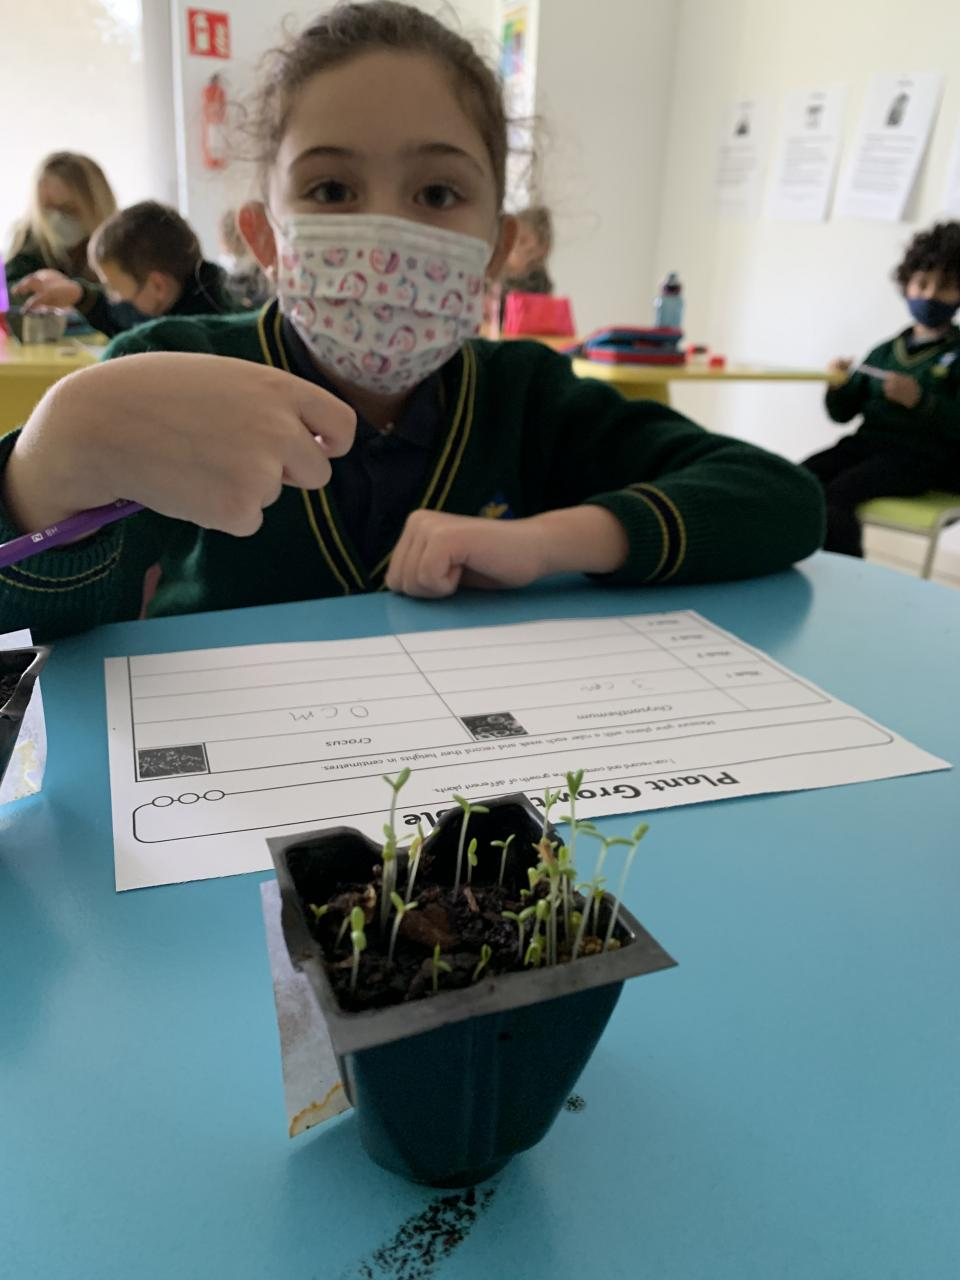 Planting seeds gives the children a purposeful opportunity to work